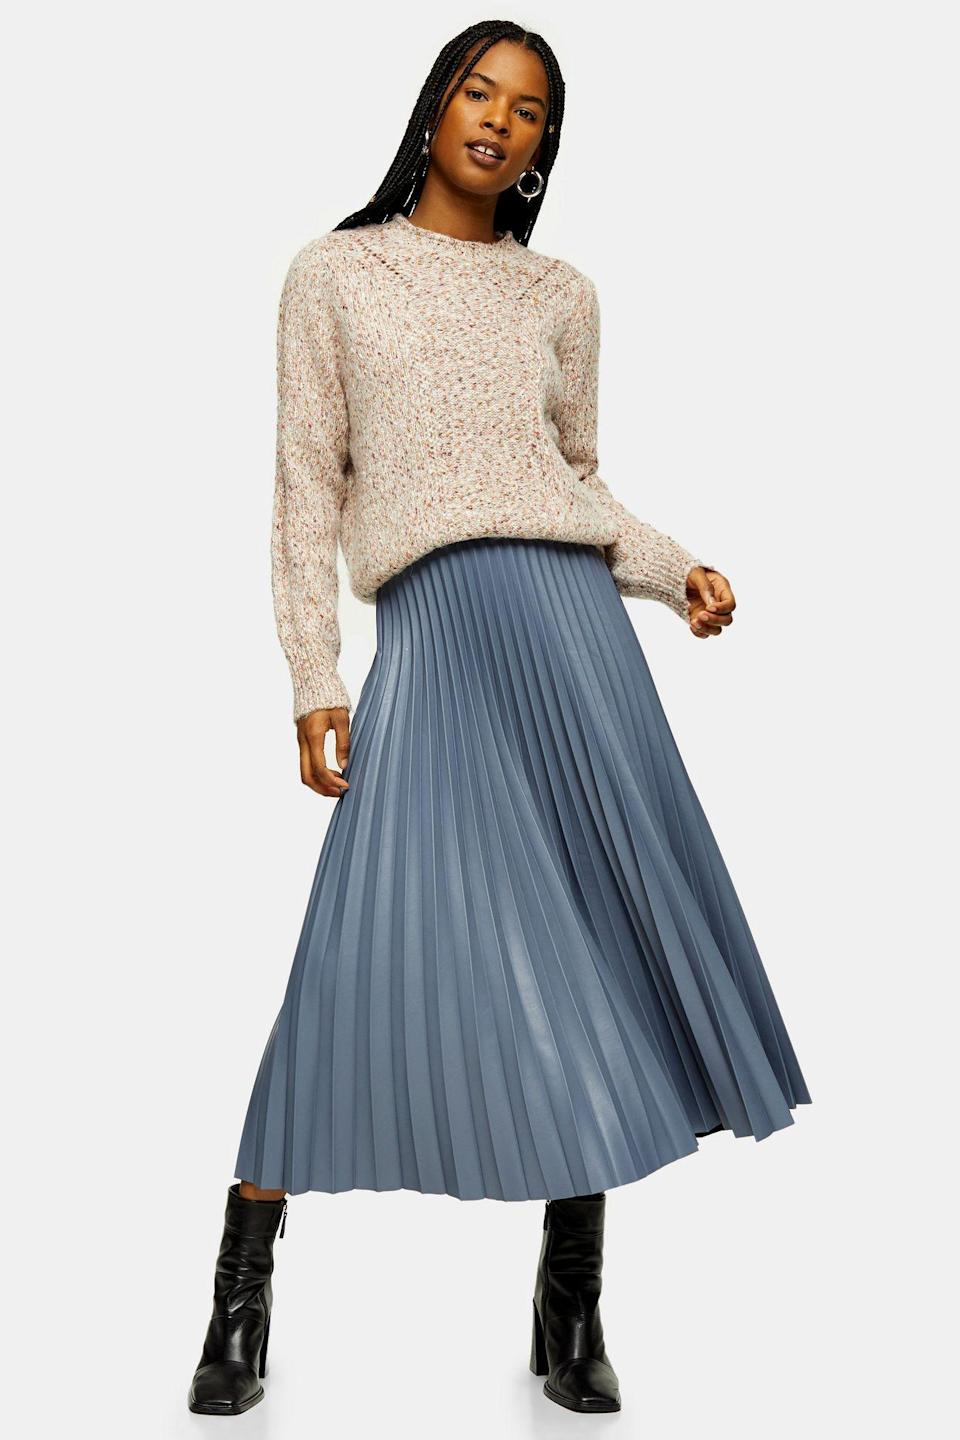 """<p><strong>Topshop</strong></p><p>topshop.com</p><p><strong>$45.00</strong></p><p><a href=""""https://go.redirectingat.com?id=74968X1596630&url=https%3A%2F%2Fus.topshop.com%2Fen%2Ftsus%2Fproduct%2Fslate-grey-pleated-pu-midi-skirt-9520442&sref=https%3A%2F%2Fwww.cosmopolitan.com%2Fstyle-beauty%2Ffashion%2Fg30933395%2Ffall-fashion-trends-2020%2F"""" rel=""""nofollow noopener"""" target=""""_blank"""" data-ylk=""""slk:Shop Now"""" class=""""link rapid-noclick-resp"""">Shop Now</a></p><p>A pleated skirt with a tucked in sweater has fall written all over it. </p>"""